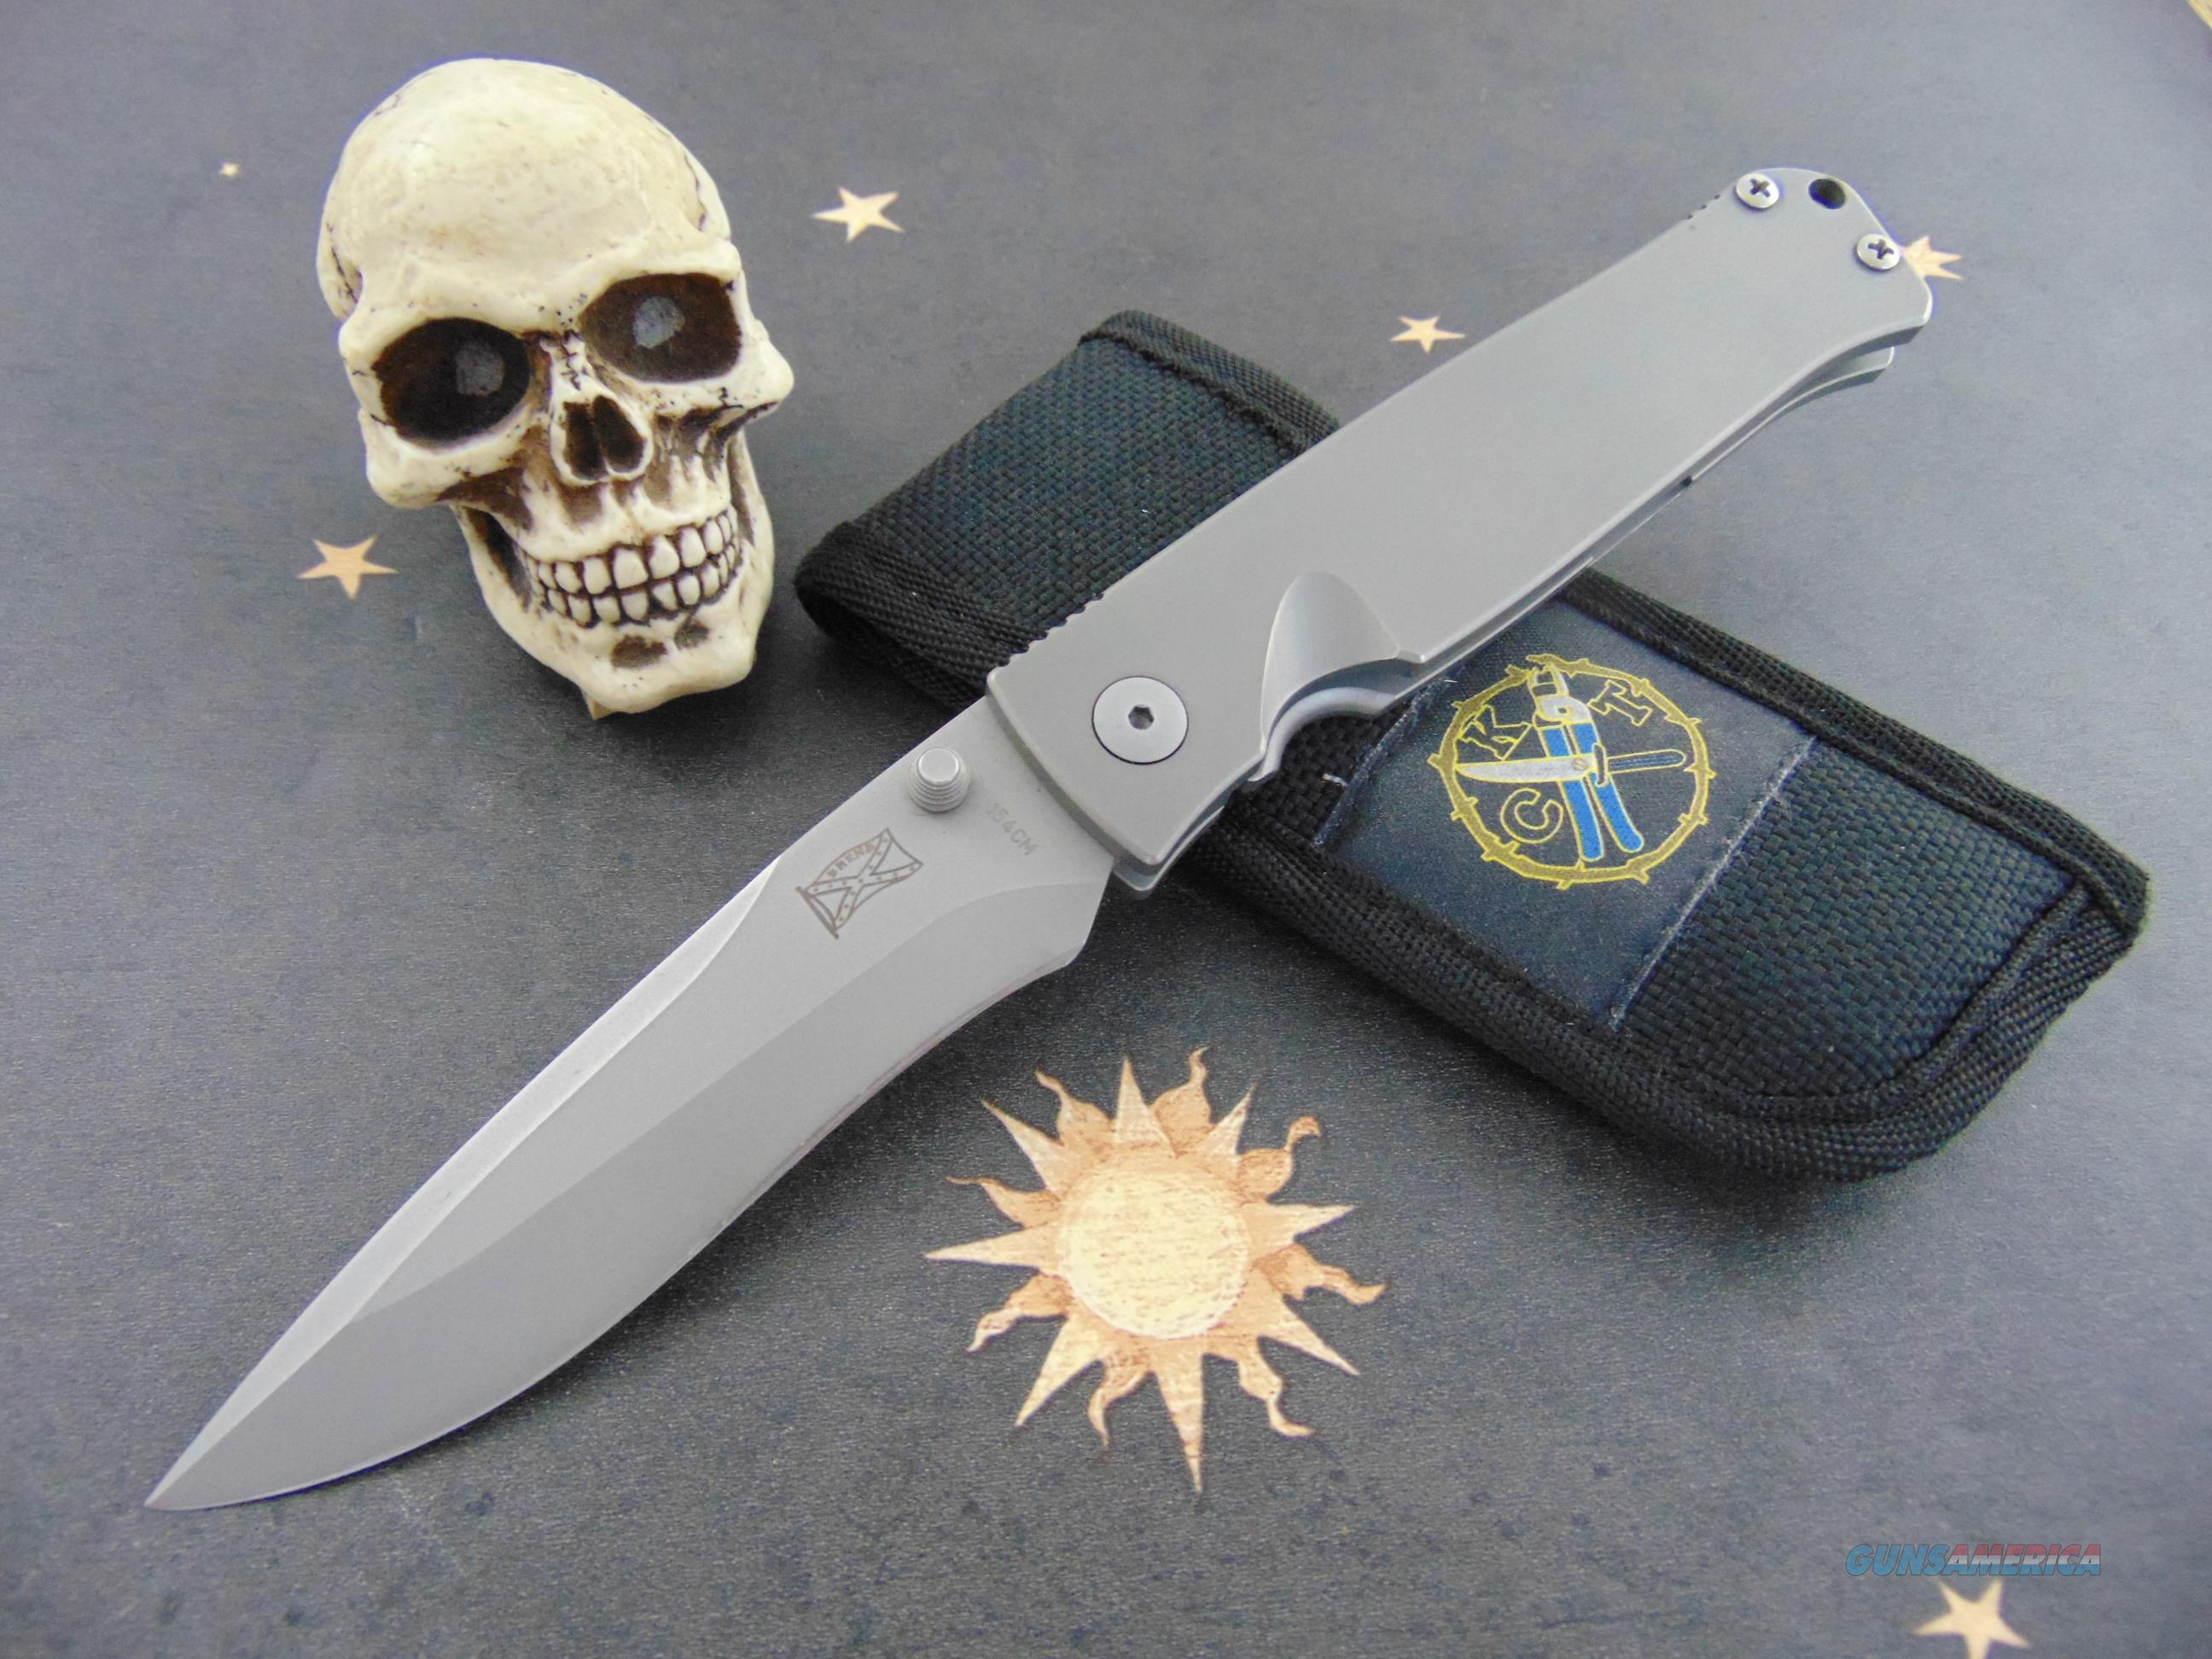 Cutters Knife and tool Walter Brend#2 Tactical M/A Model Brend Logo on Blade Serial # 0023  Non-Guns > Knives/Swords > Knives > Folding Blade > Hand Made